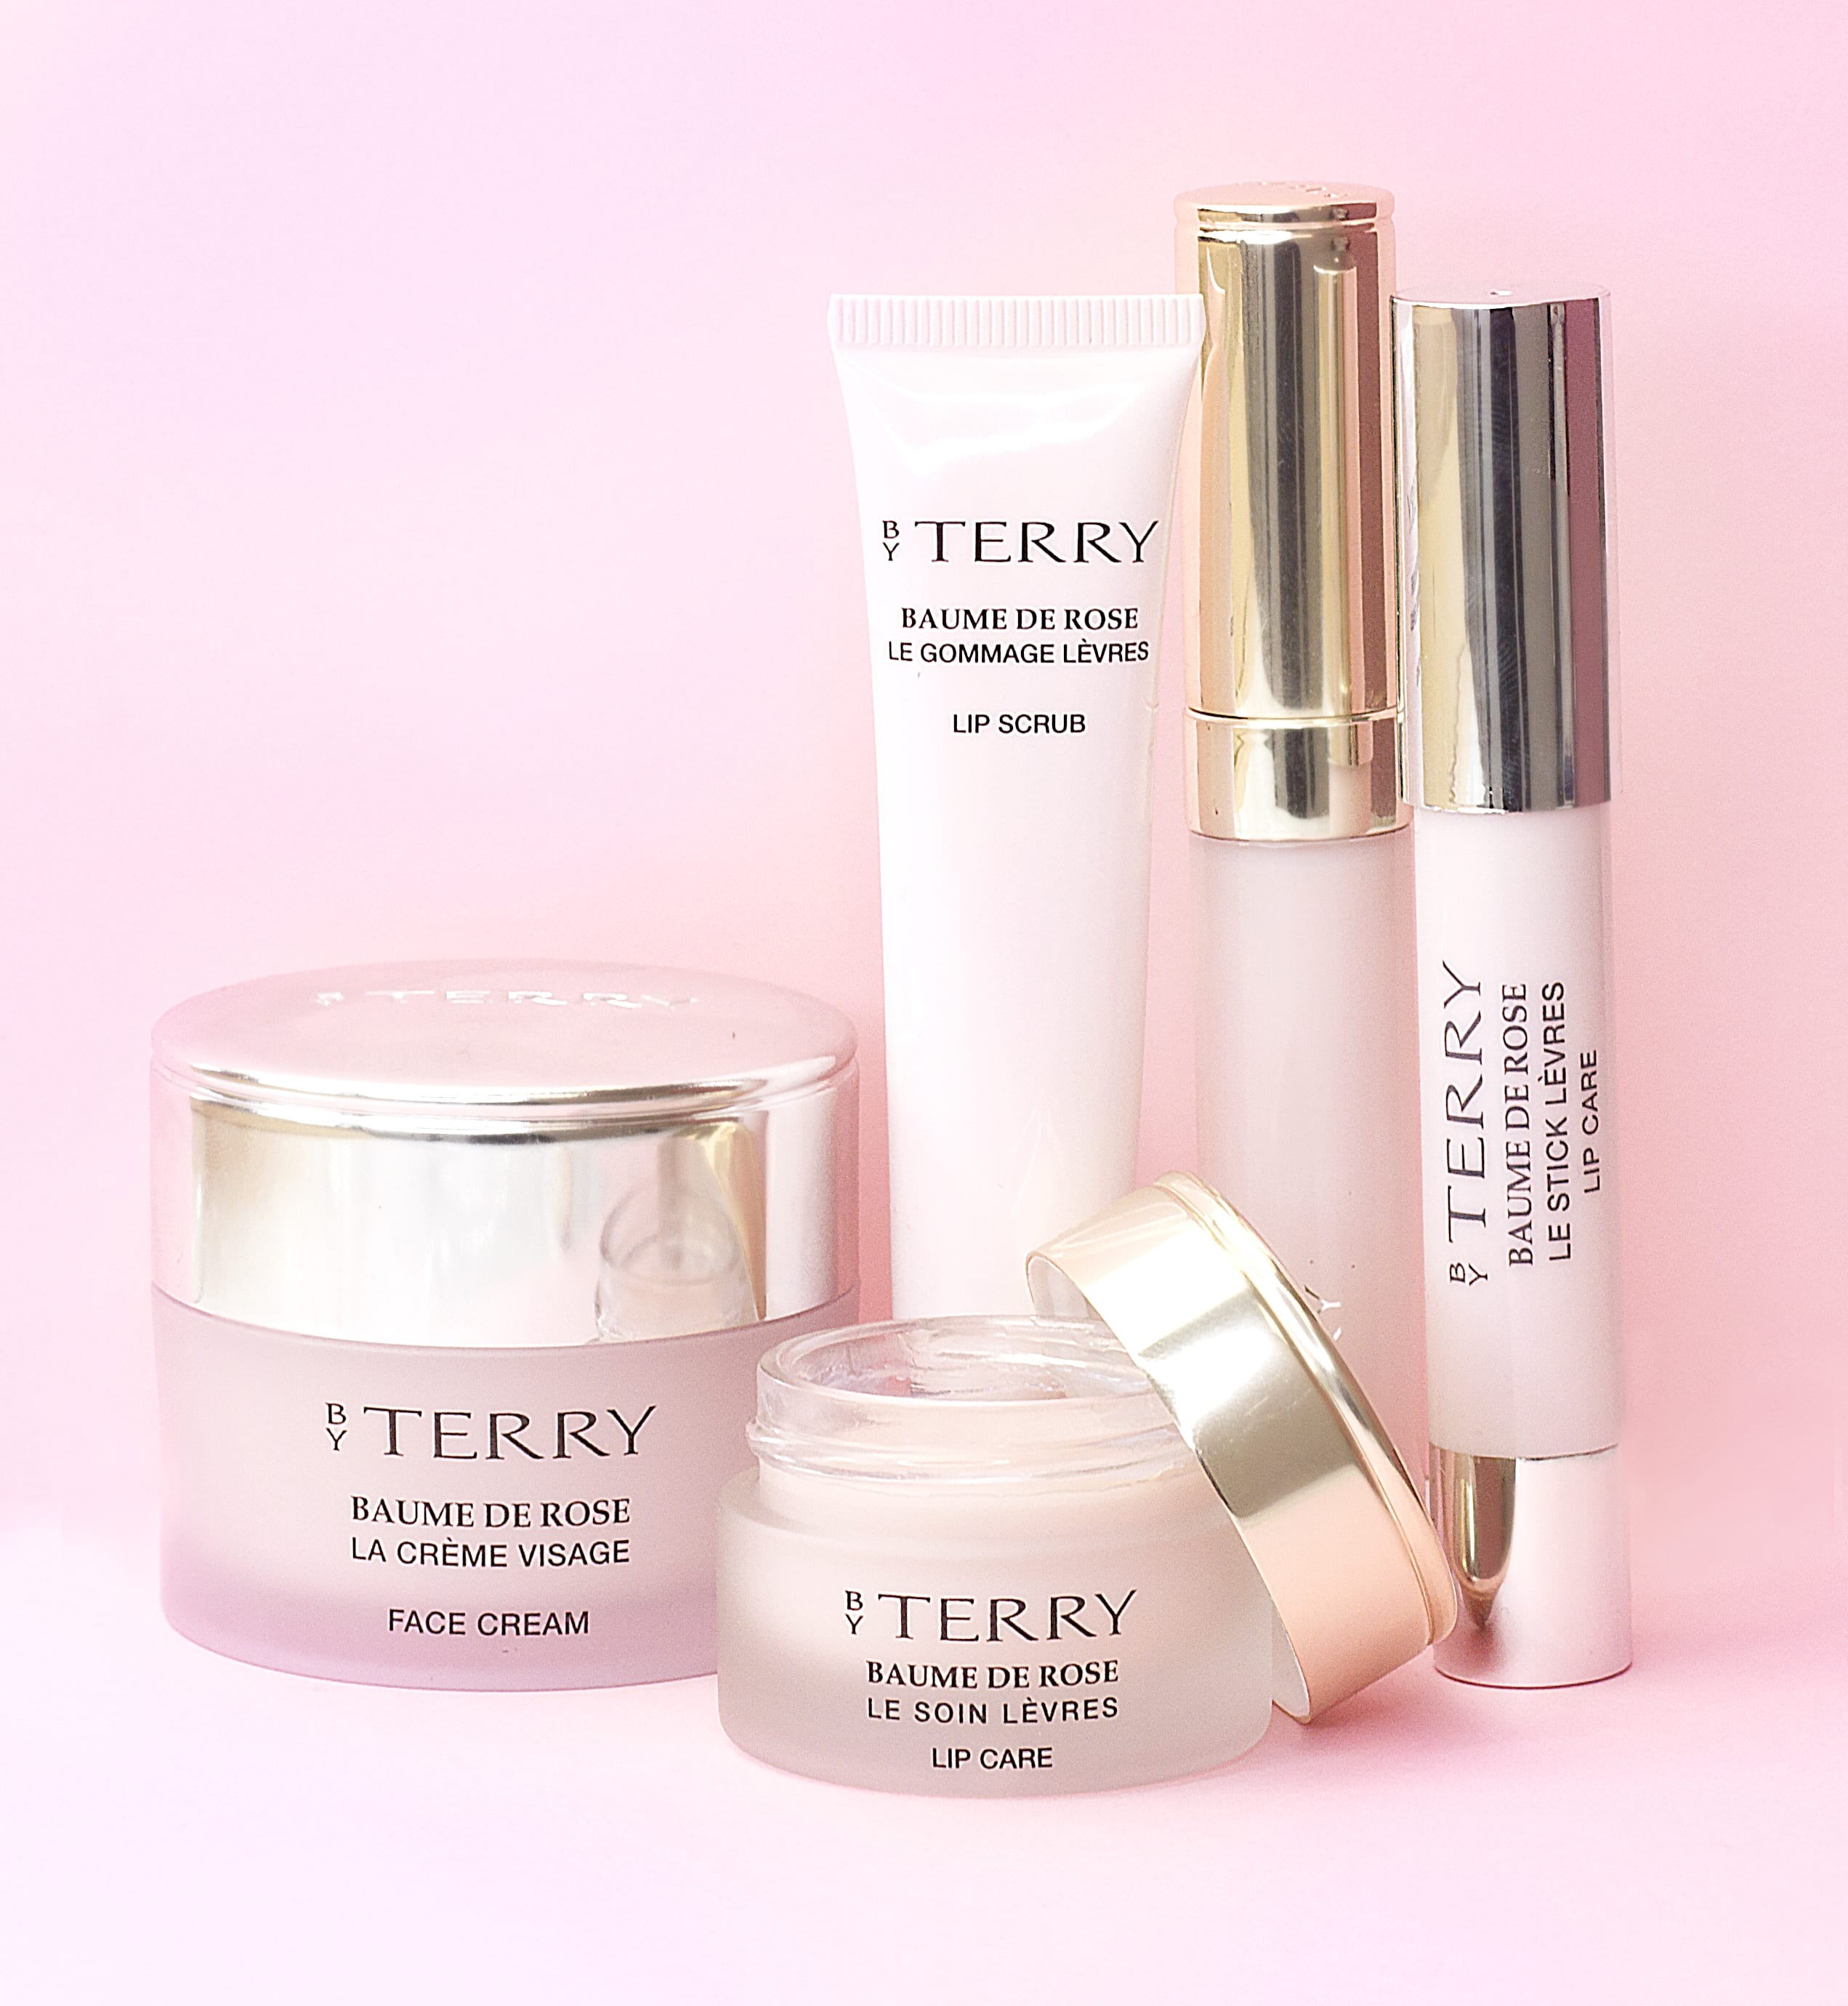 By Terry, Baume de Rose